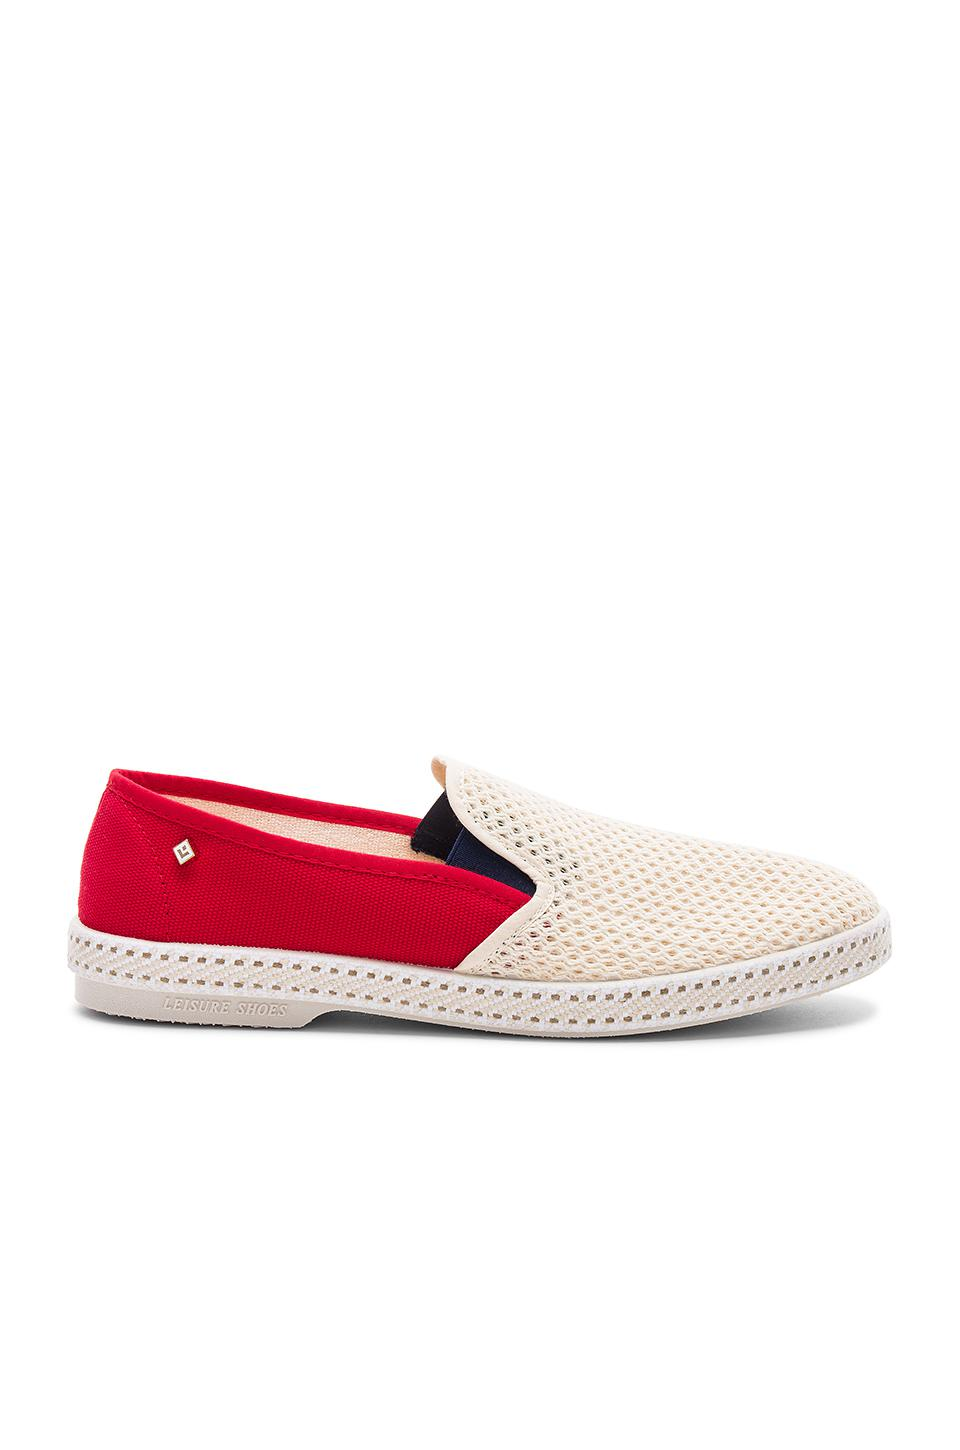 Rivieras Leisure Shoes Tour Du Monde France Slip-on Shoe Acheter Un Excellent Pas Cher mtY7wENuD